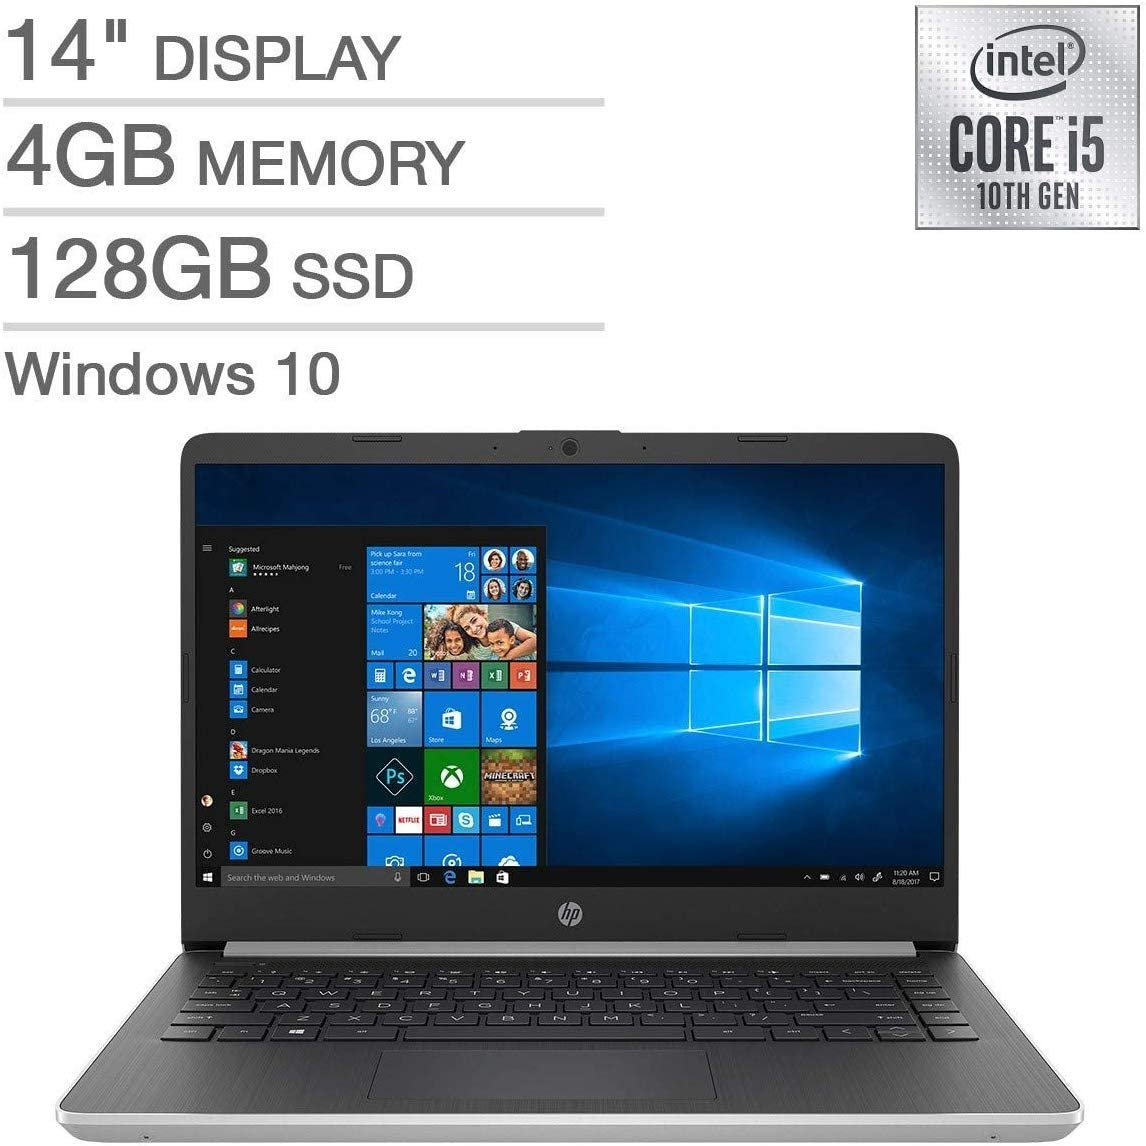 """HP 14"""" FHD IPS Laptop Notebook Computer, 10th Gen i5-1035G4 (up to 3.7GHz), 4GB RAM, 128GB SSD, HDMI, WiFi, Bluetooth, Windows 10 with S Mode"""